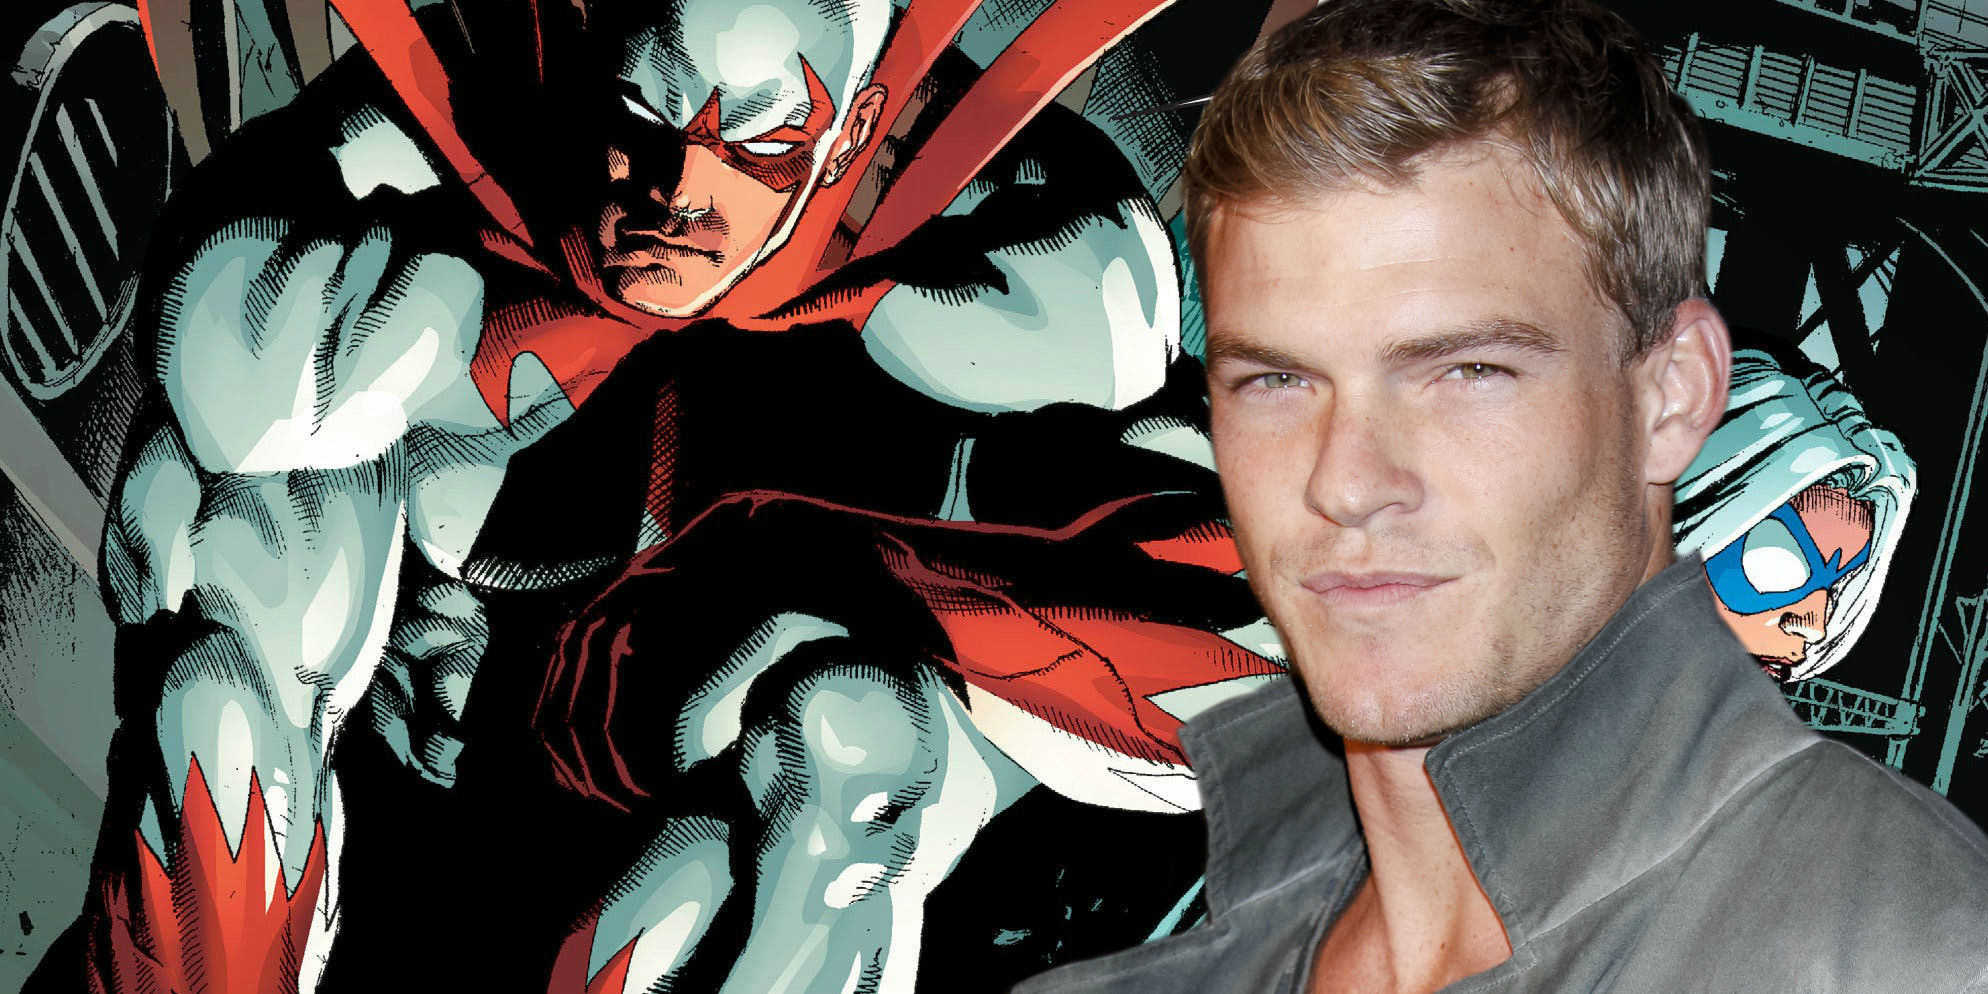 Titans Series Casts Alan Ritchson As Hawk | Screen Rant